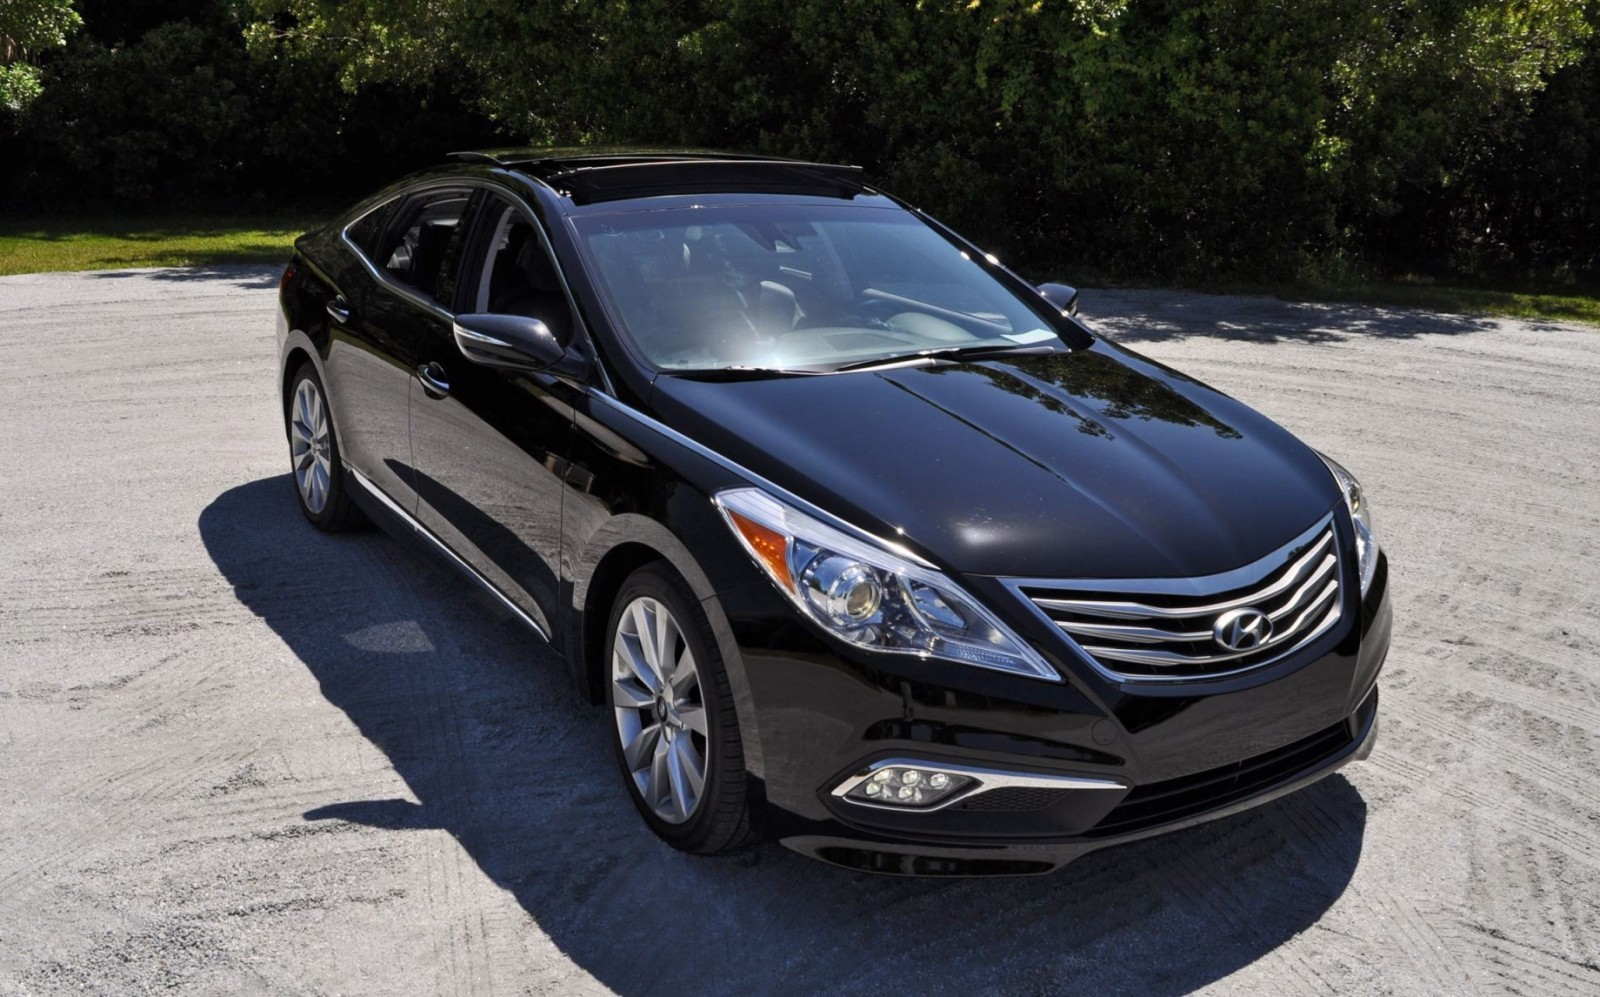 Road Test Review - 2015 Hyundai AZERA Limited 129